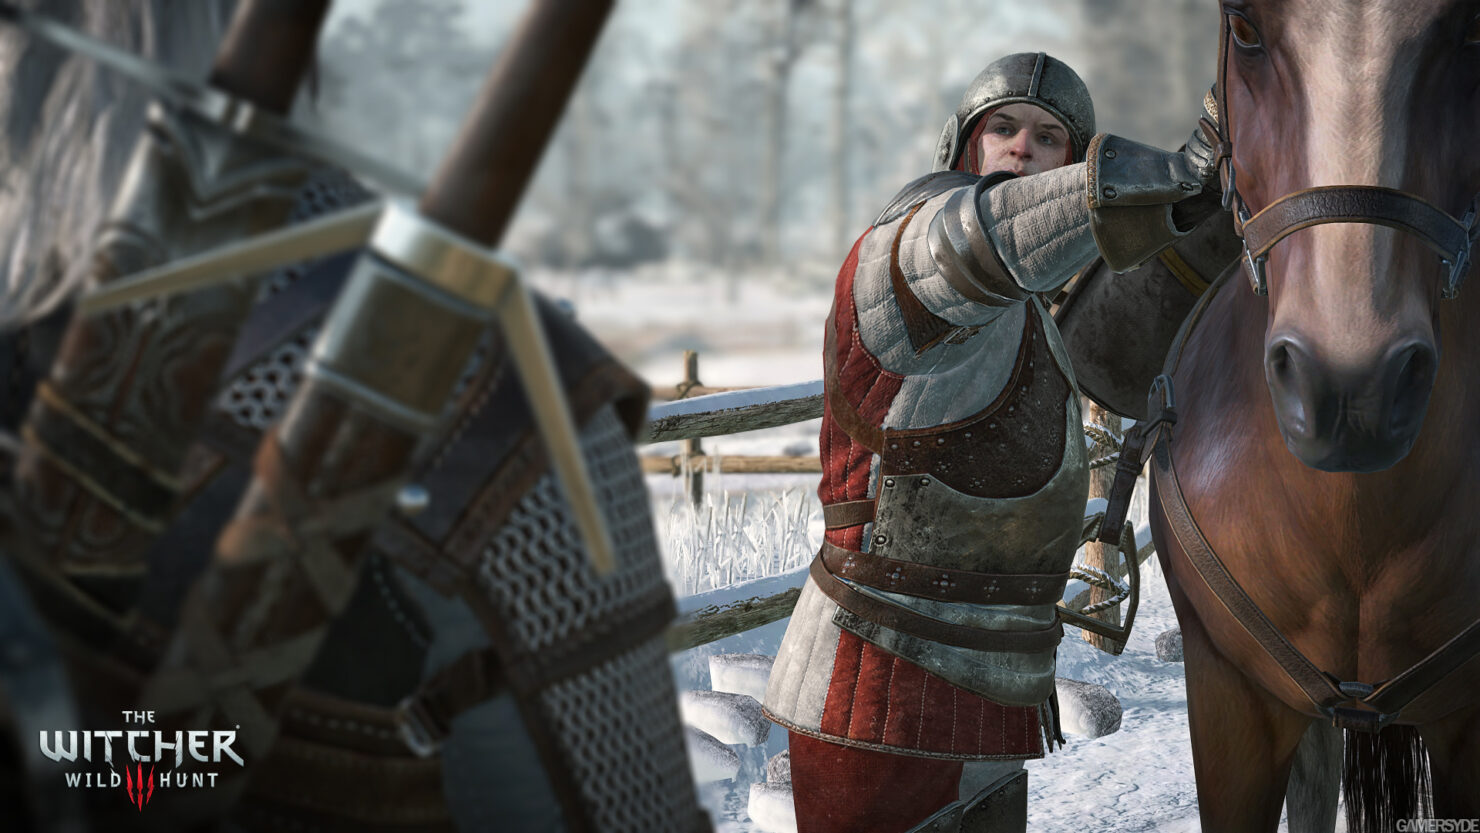 image_the_witcher_3_wild_hunt-26498-2651_0001